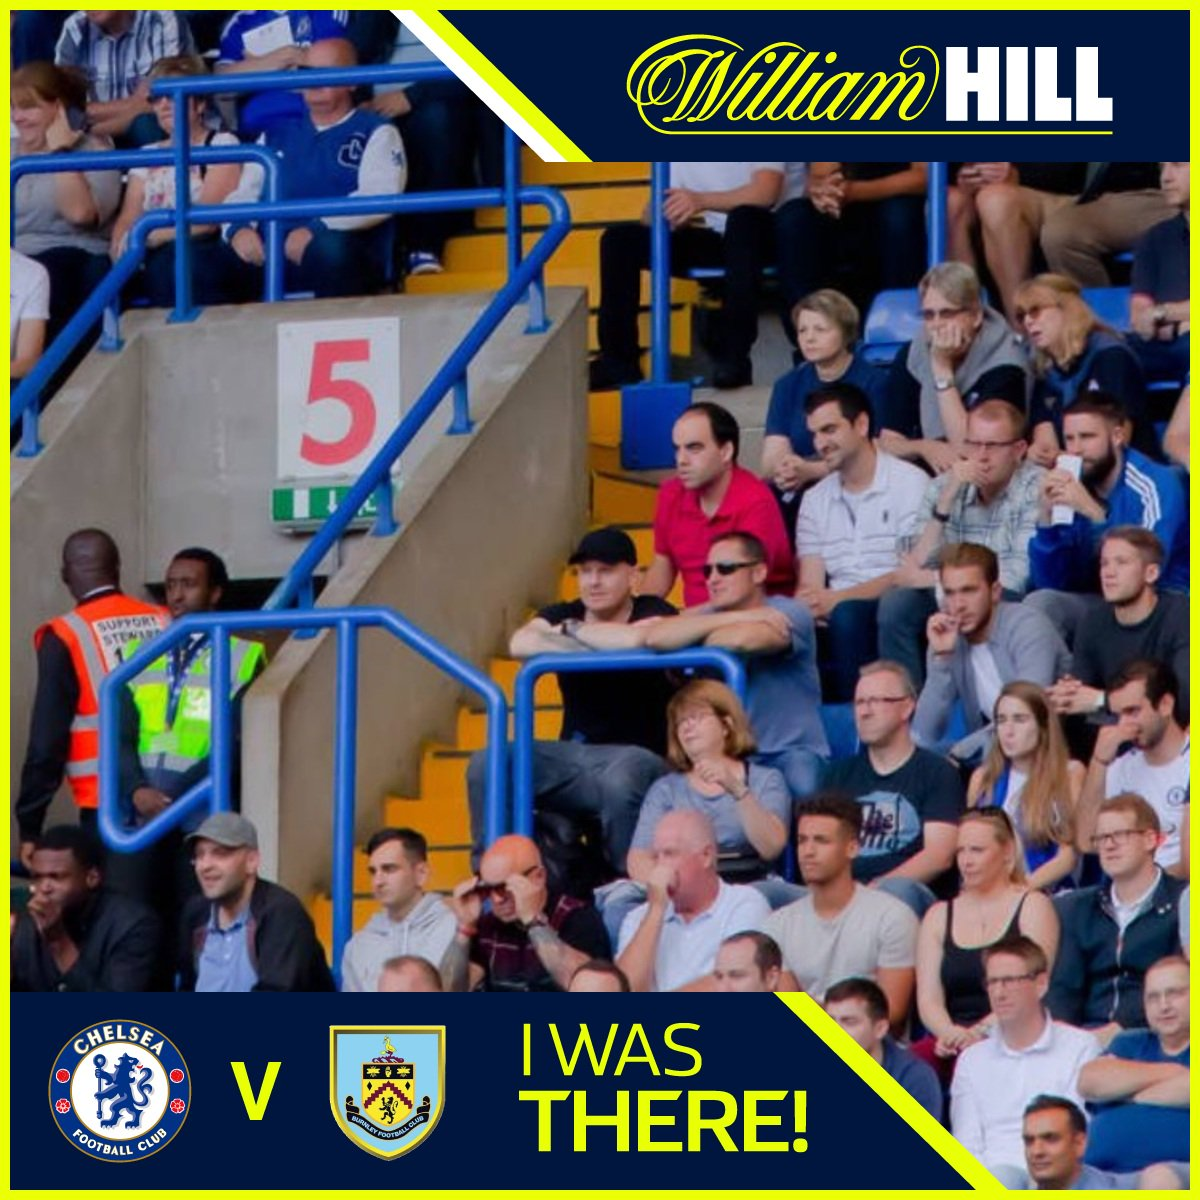 I was there! Check @WilliamHill FanPic  @ChelseaFC v Burnley #CHEBUR  http:// wh.cm/chelseafanpic  &nbsp;  <br>http://pic.twitter.com/eF7ydQydQ0